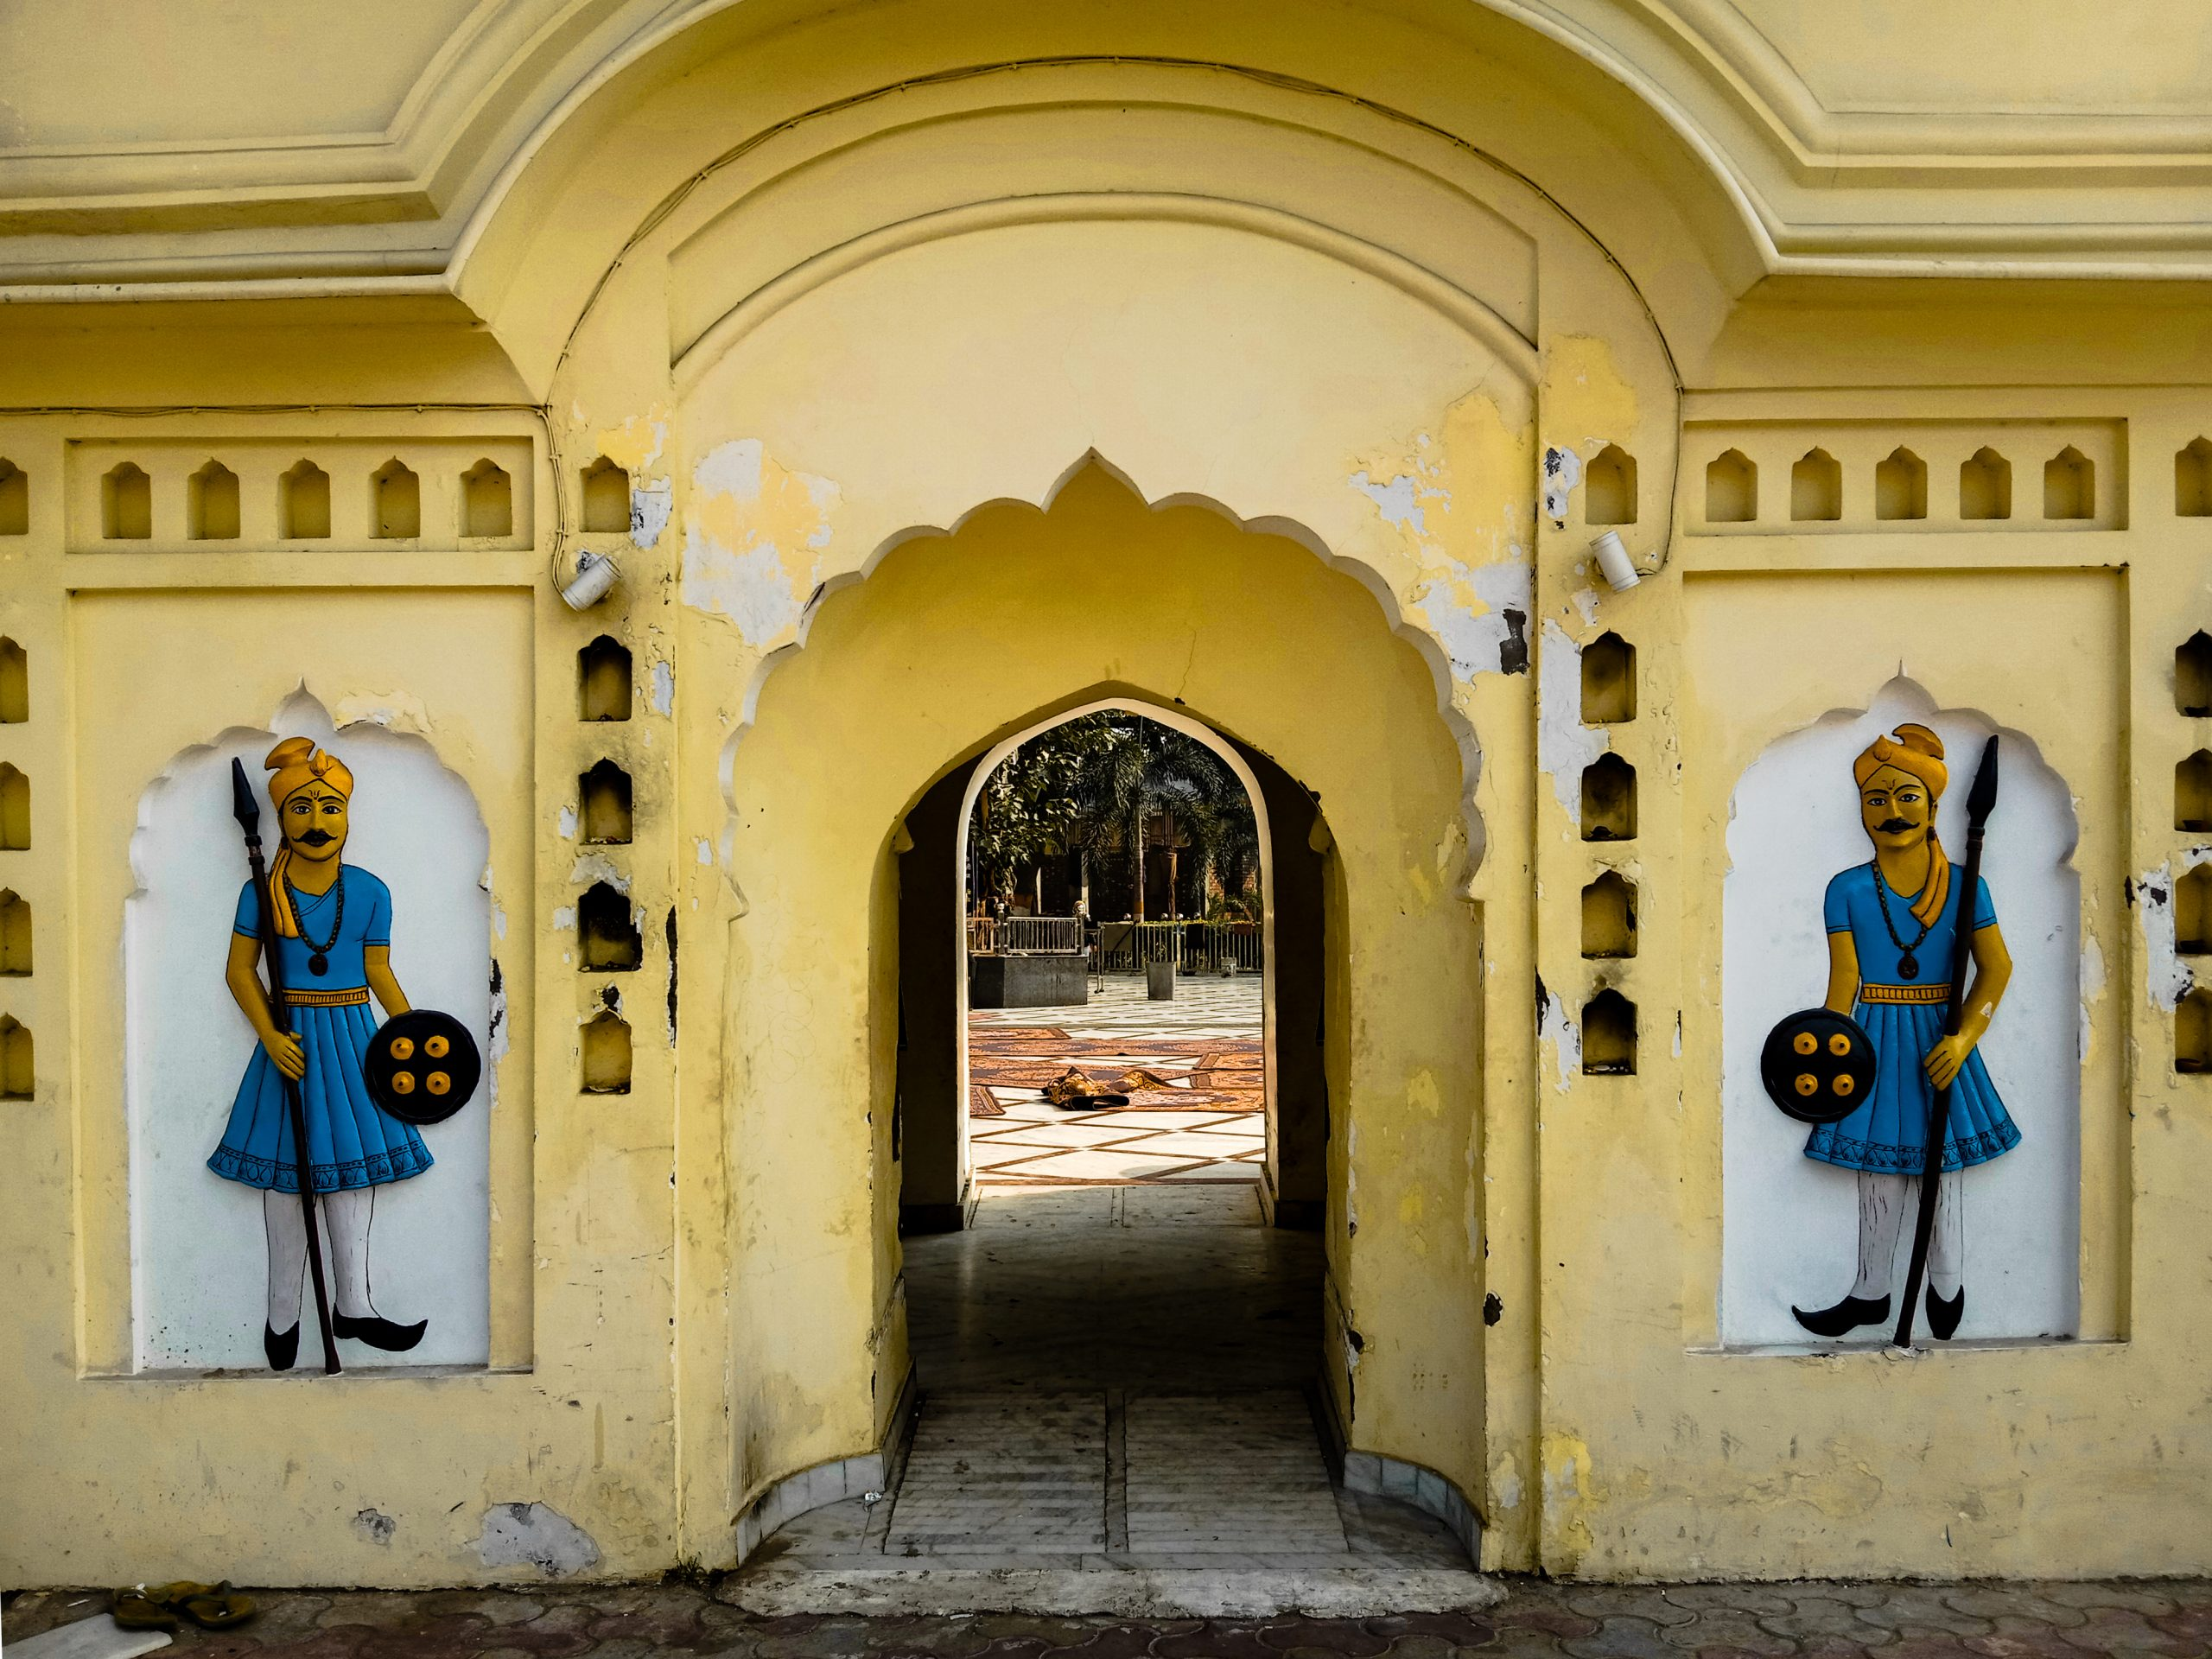 Entrance of a temple